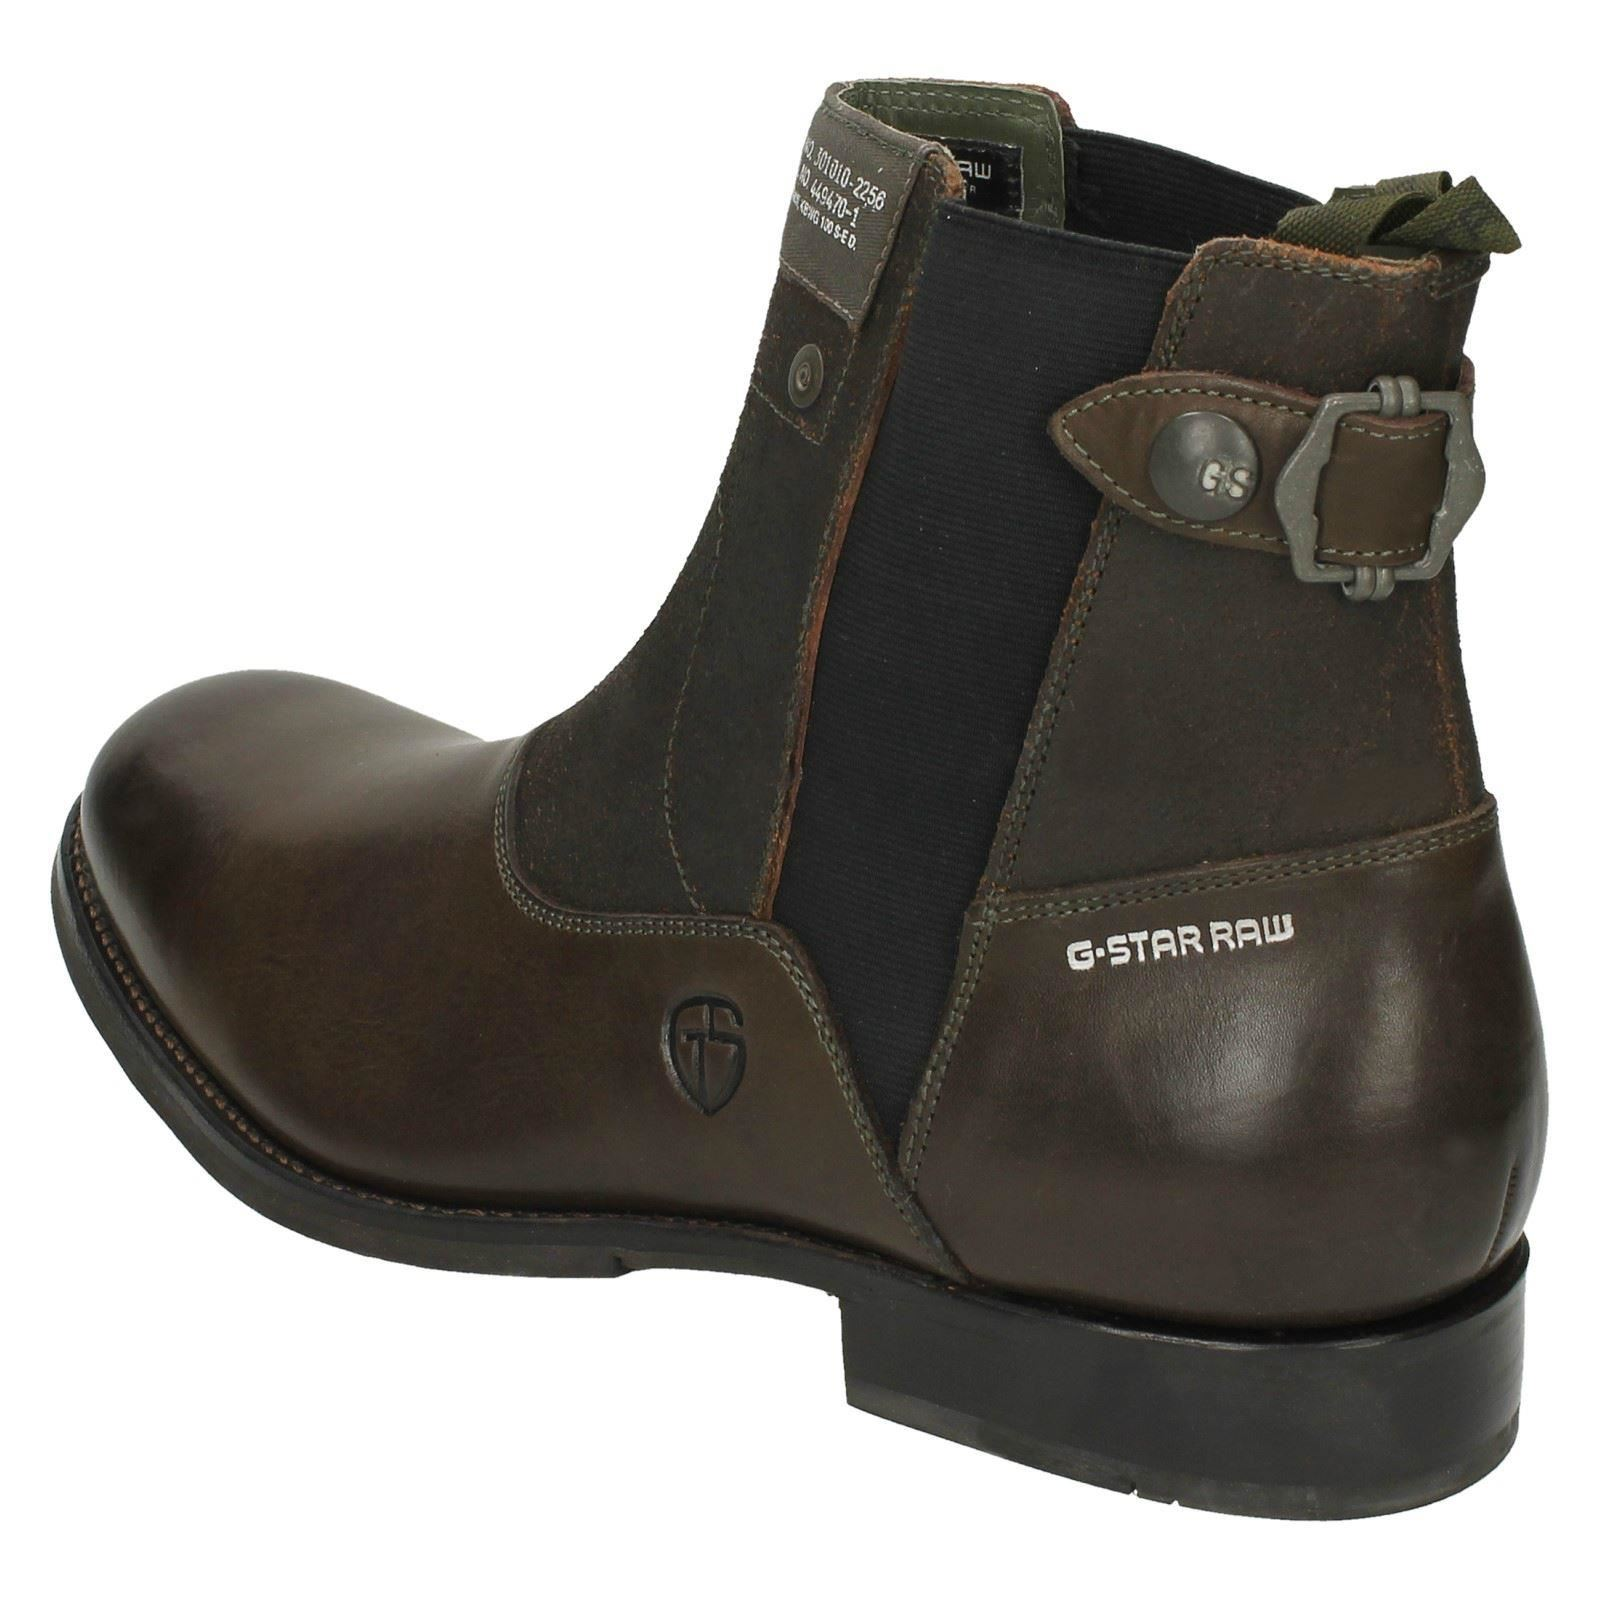 mens g star raw ankle boots attache ebay. Black Bedroom Furniture Sets. Home Design Ideas